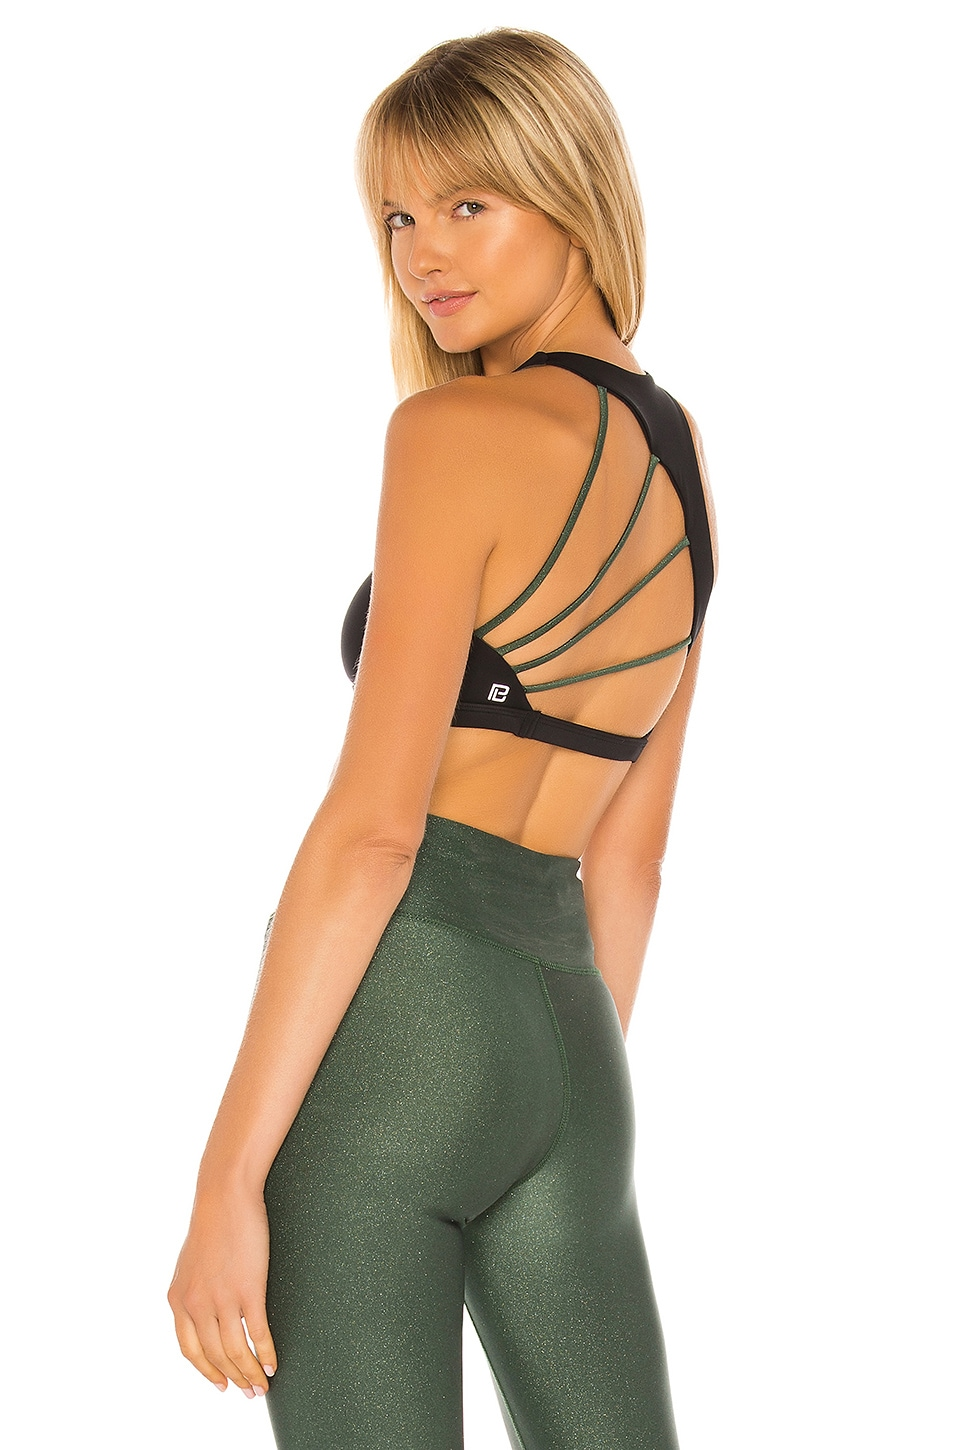 Body Language Margo Reversible Sports Bra in Black & Olive